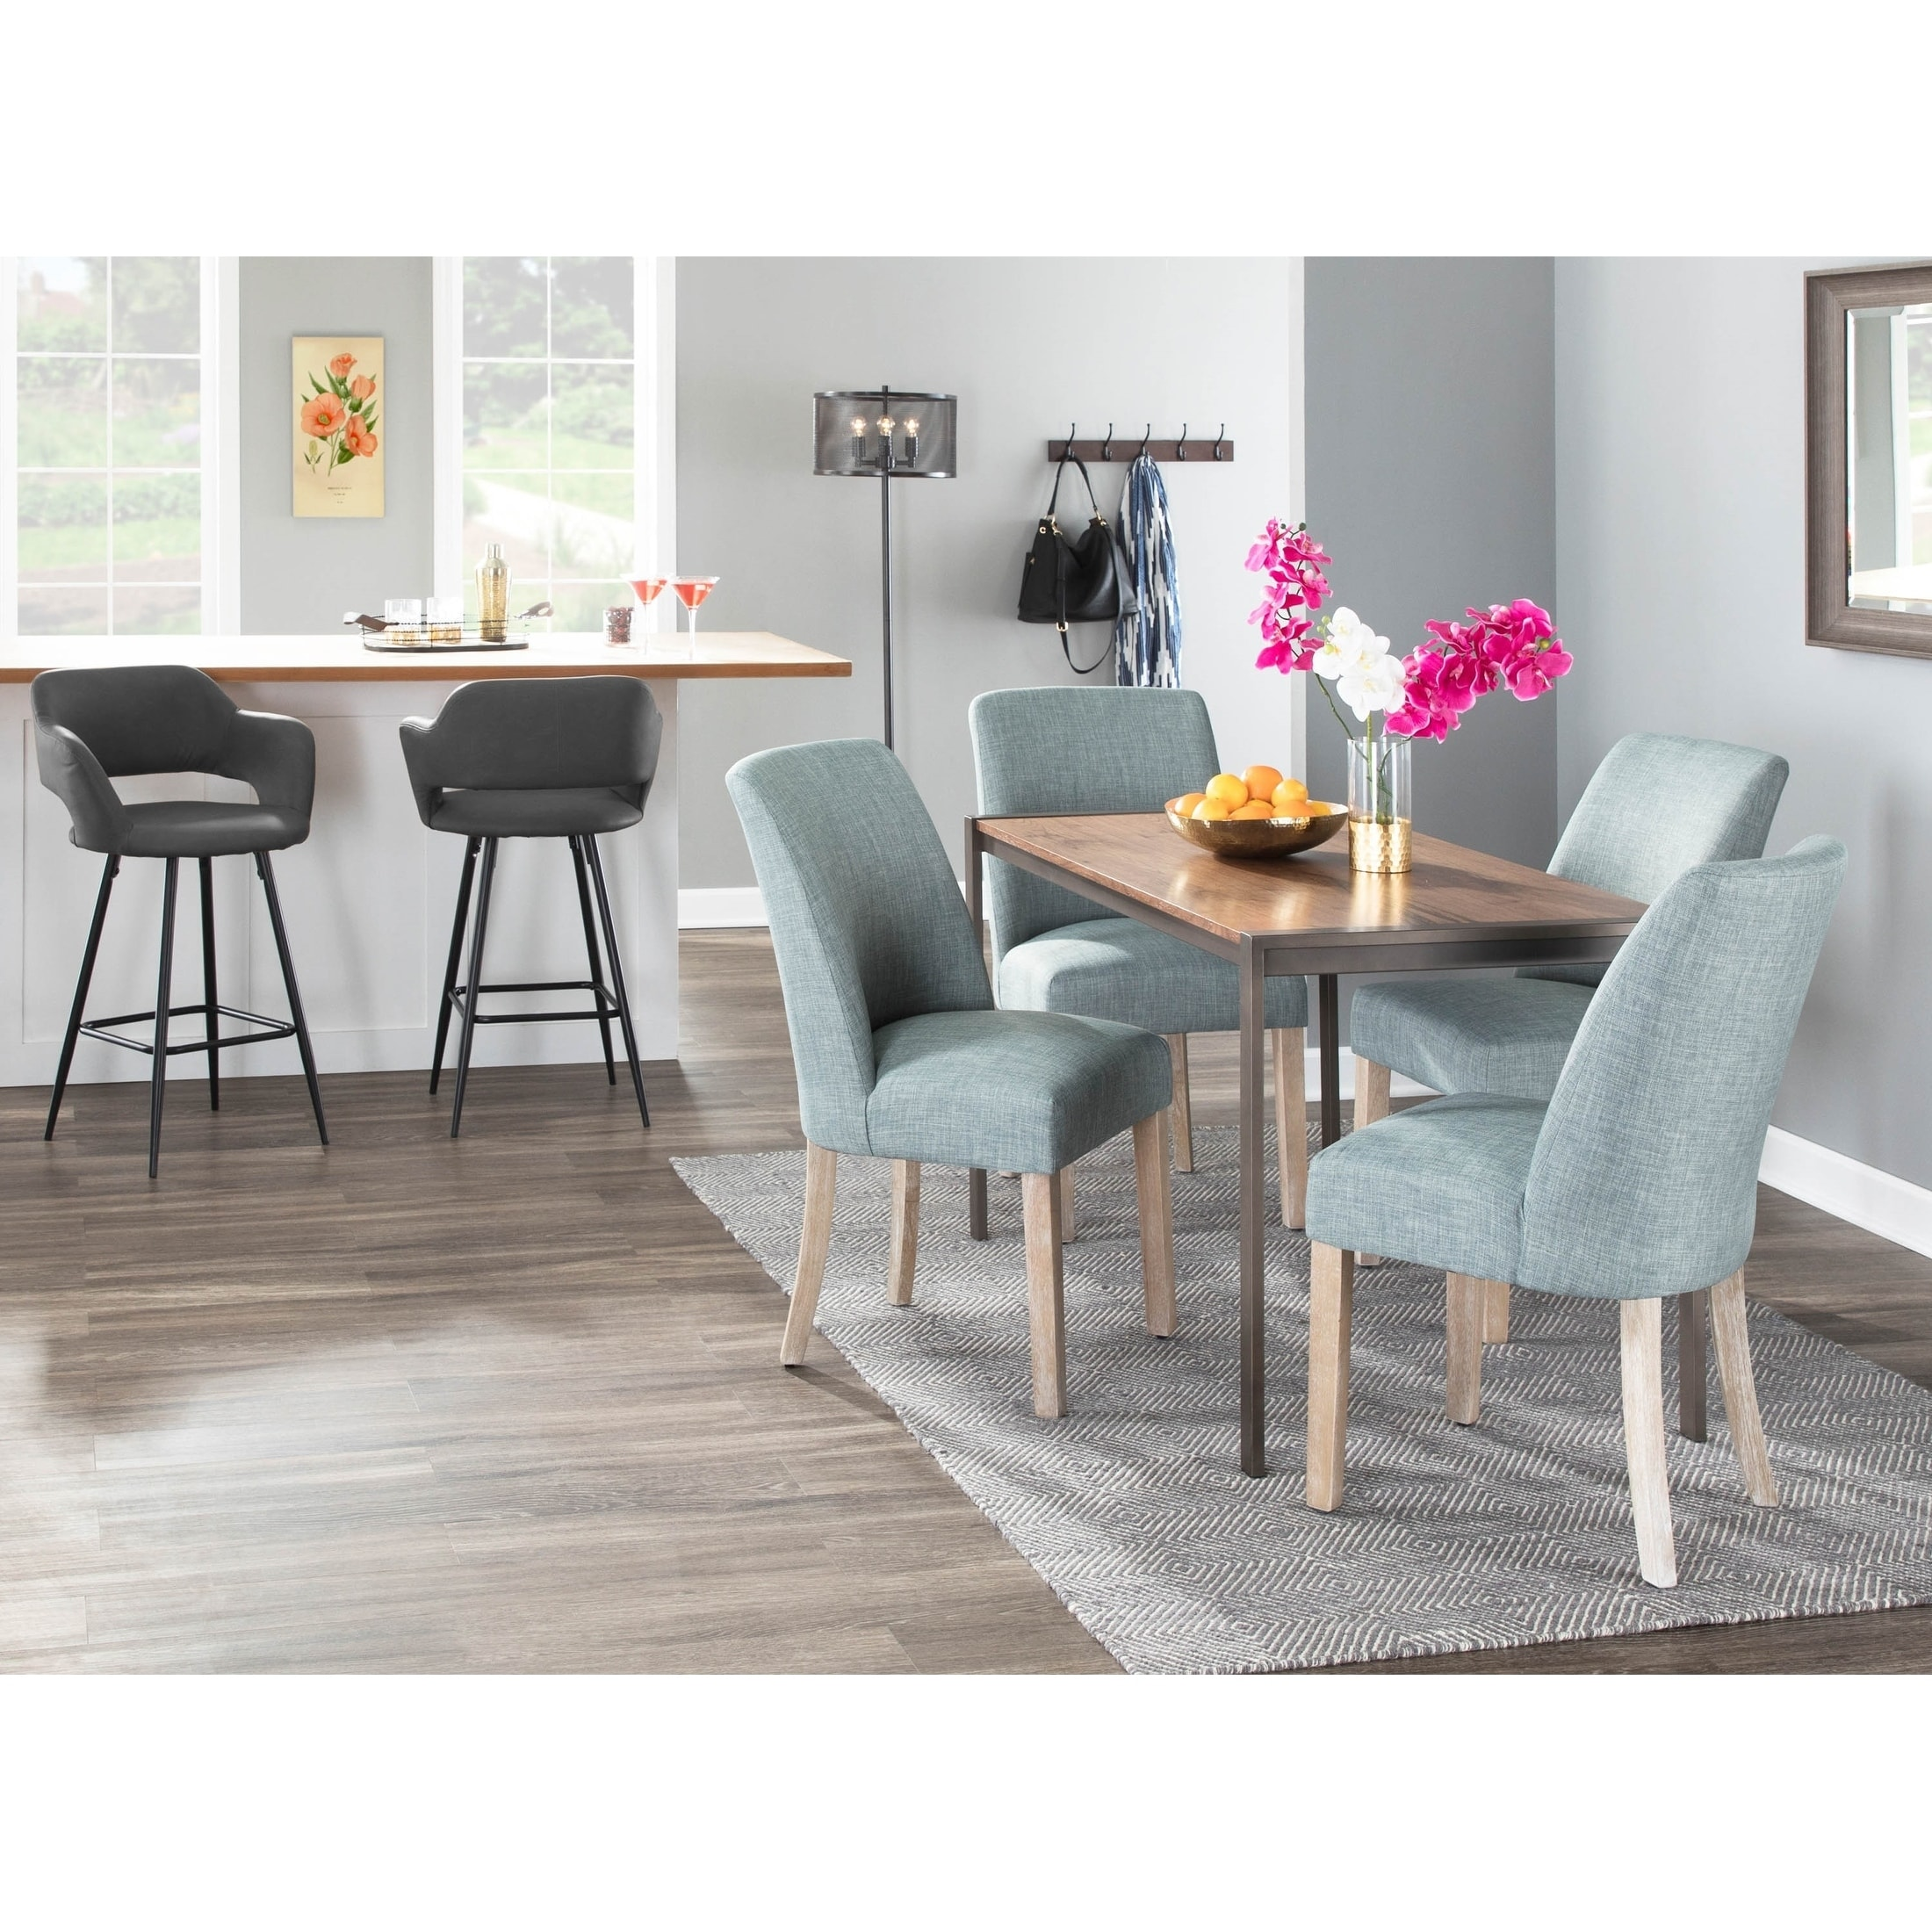 The Gray Barn Spelling Stream Farmhouse Upholstered Dining Chair With White Washed Wood Set Of 2 N A On Sale Overstock 25661081 Grey